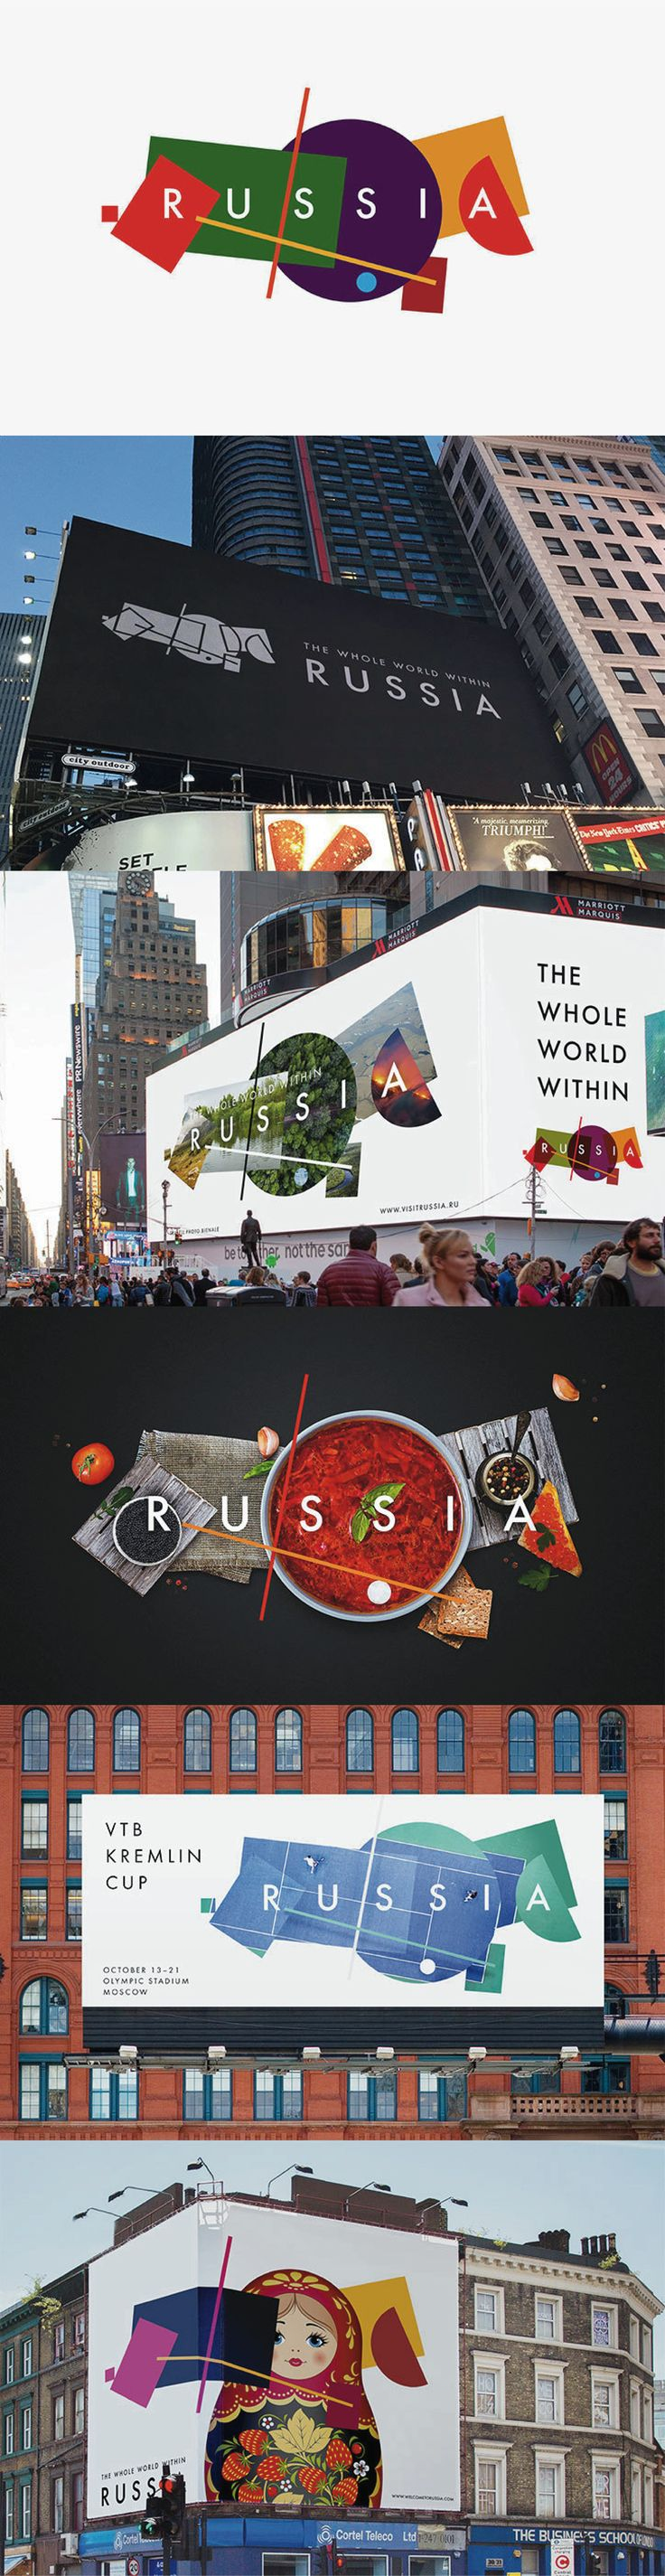 2015 Map Of Russia%0A News   Graphic Design The rebrand for Russia u    s tourist board uses  Suprematist geometry laid out as